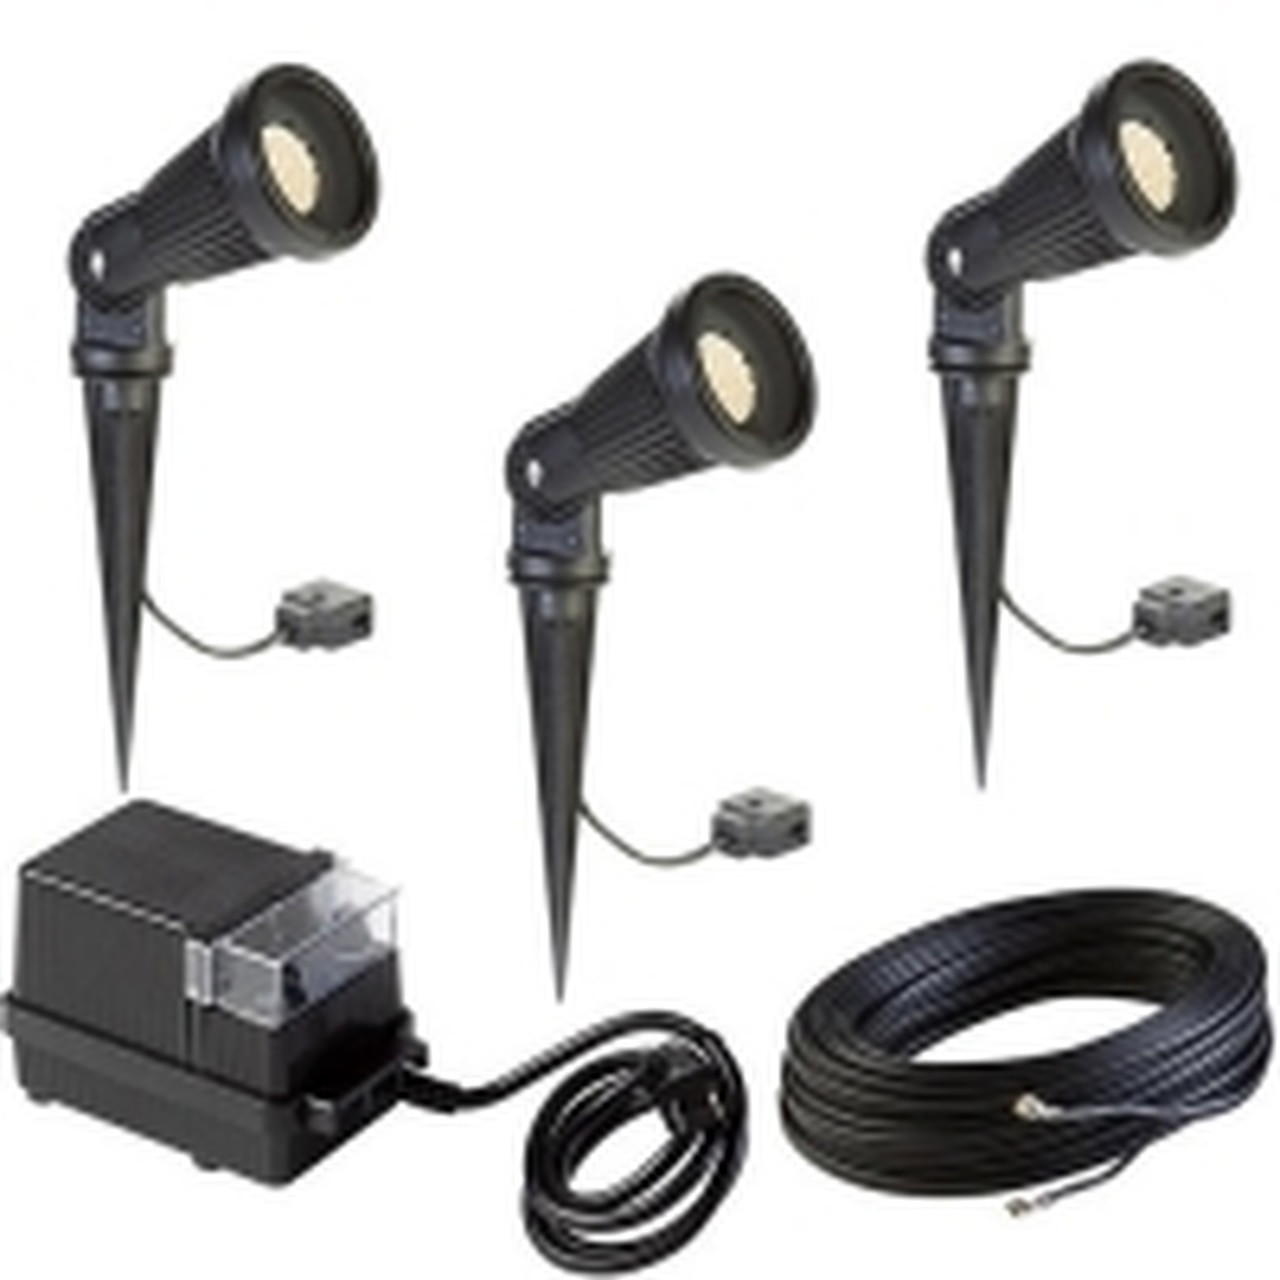 Best ideas about Affordable Quality Lighting . Save or Pin Outdoor Landscape Lights Now.